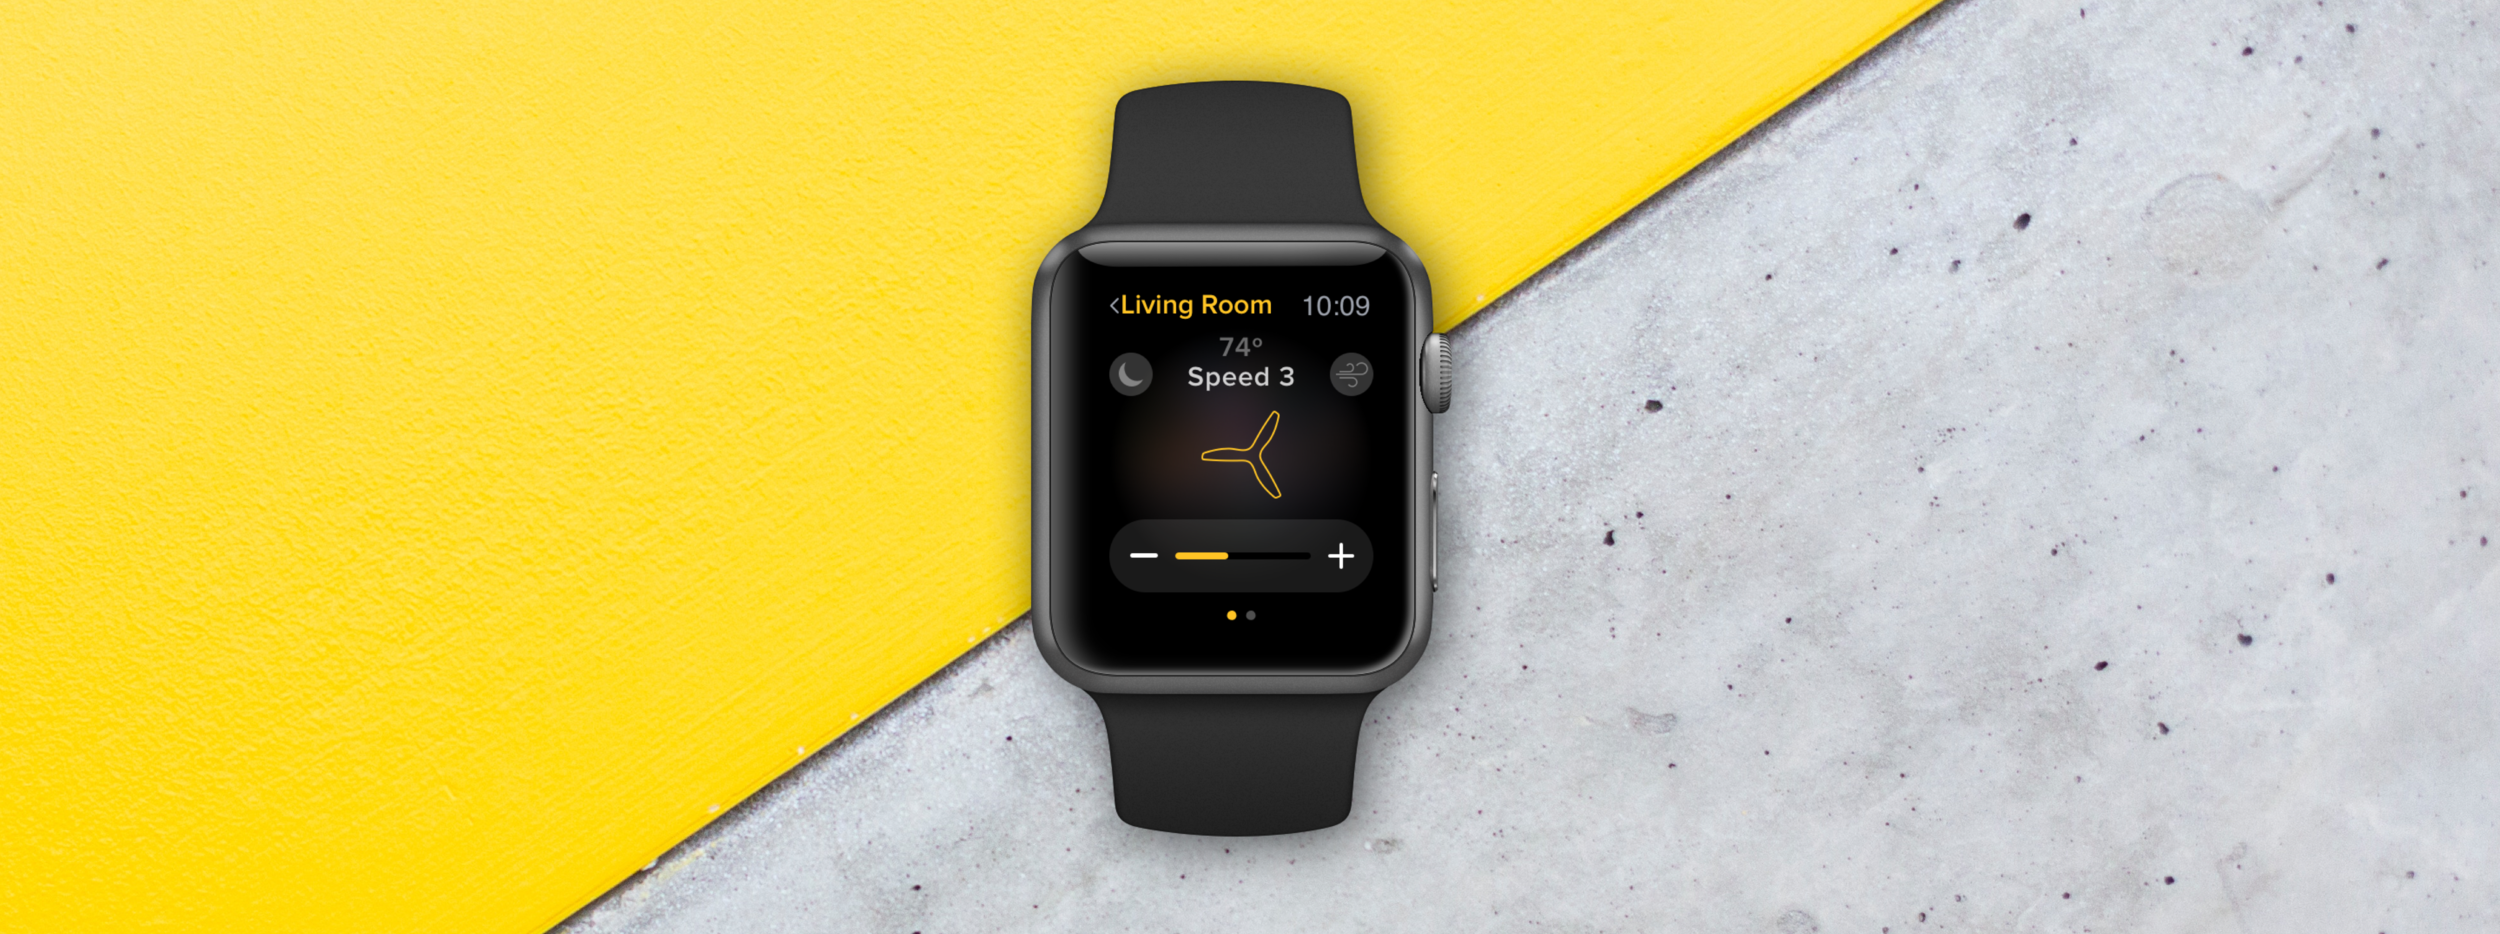 Watch - On Device.png